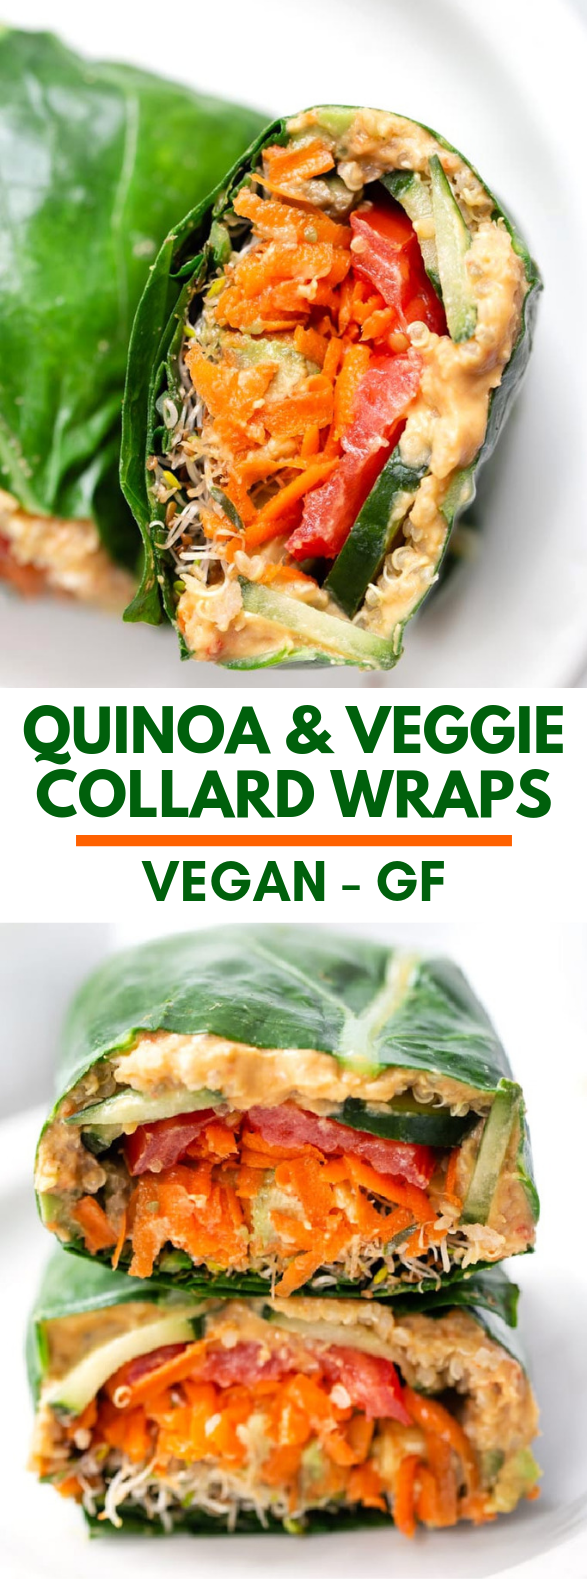 Quinoa & Veggie Collard Wraps #vegetarian #healthy